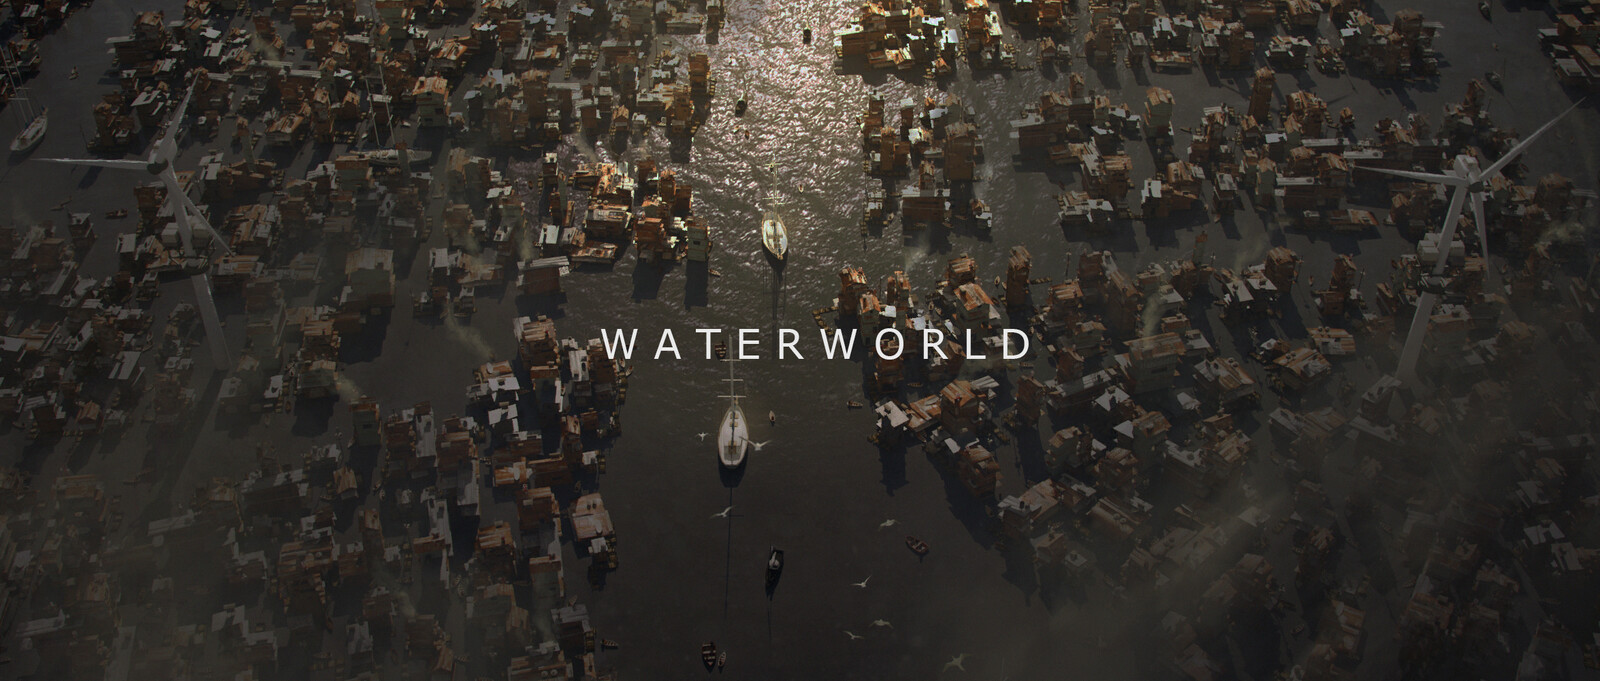 Waterworld _lie setiawan